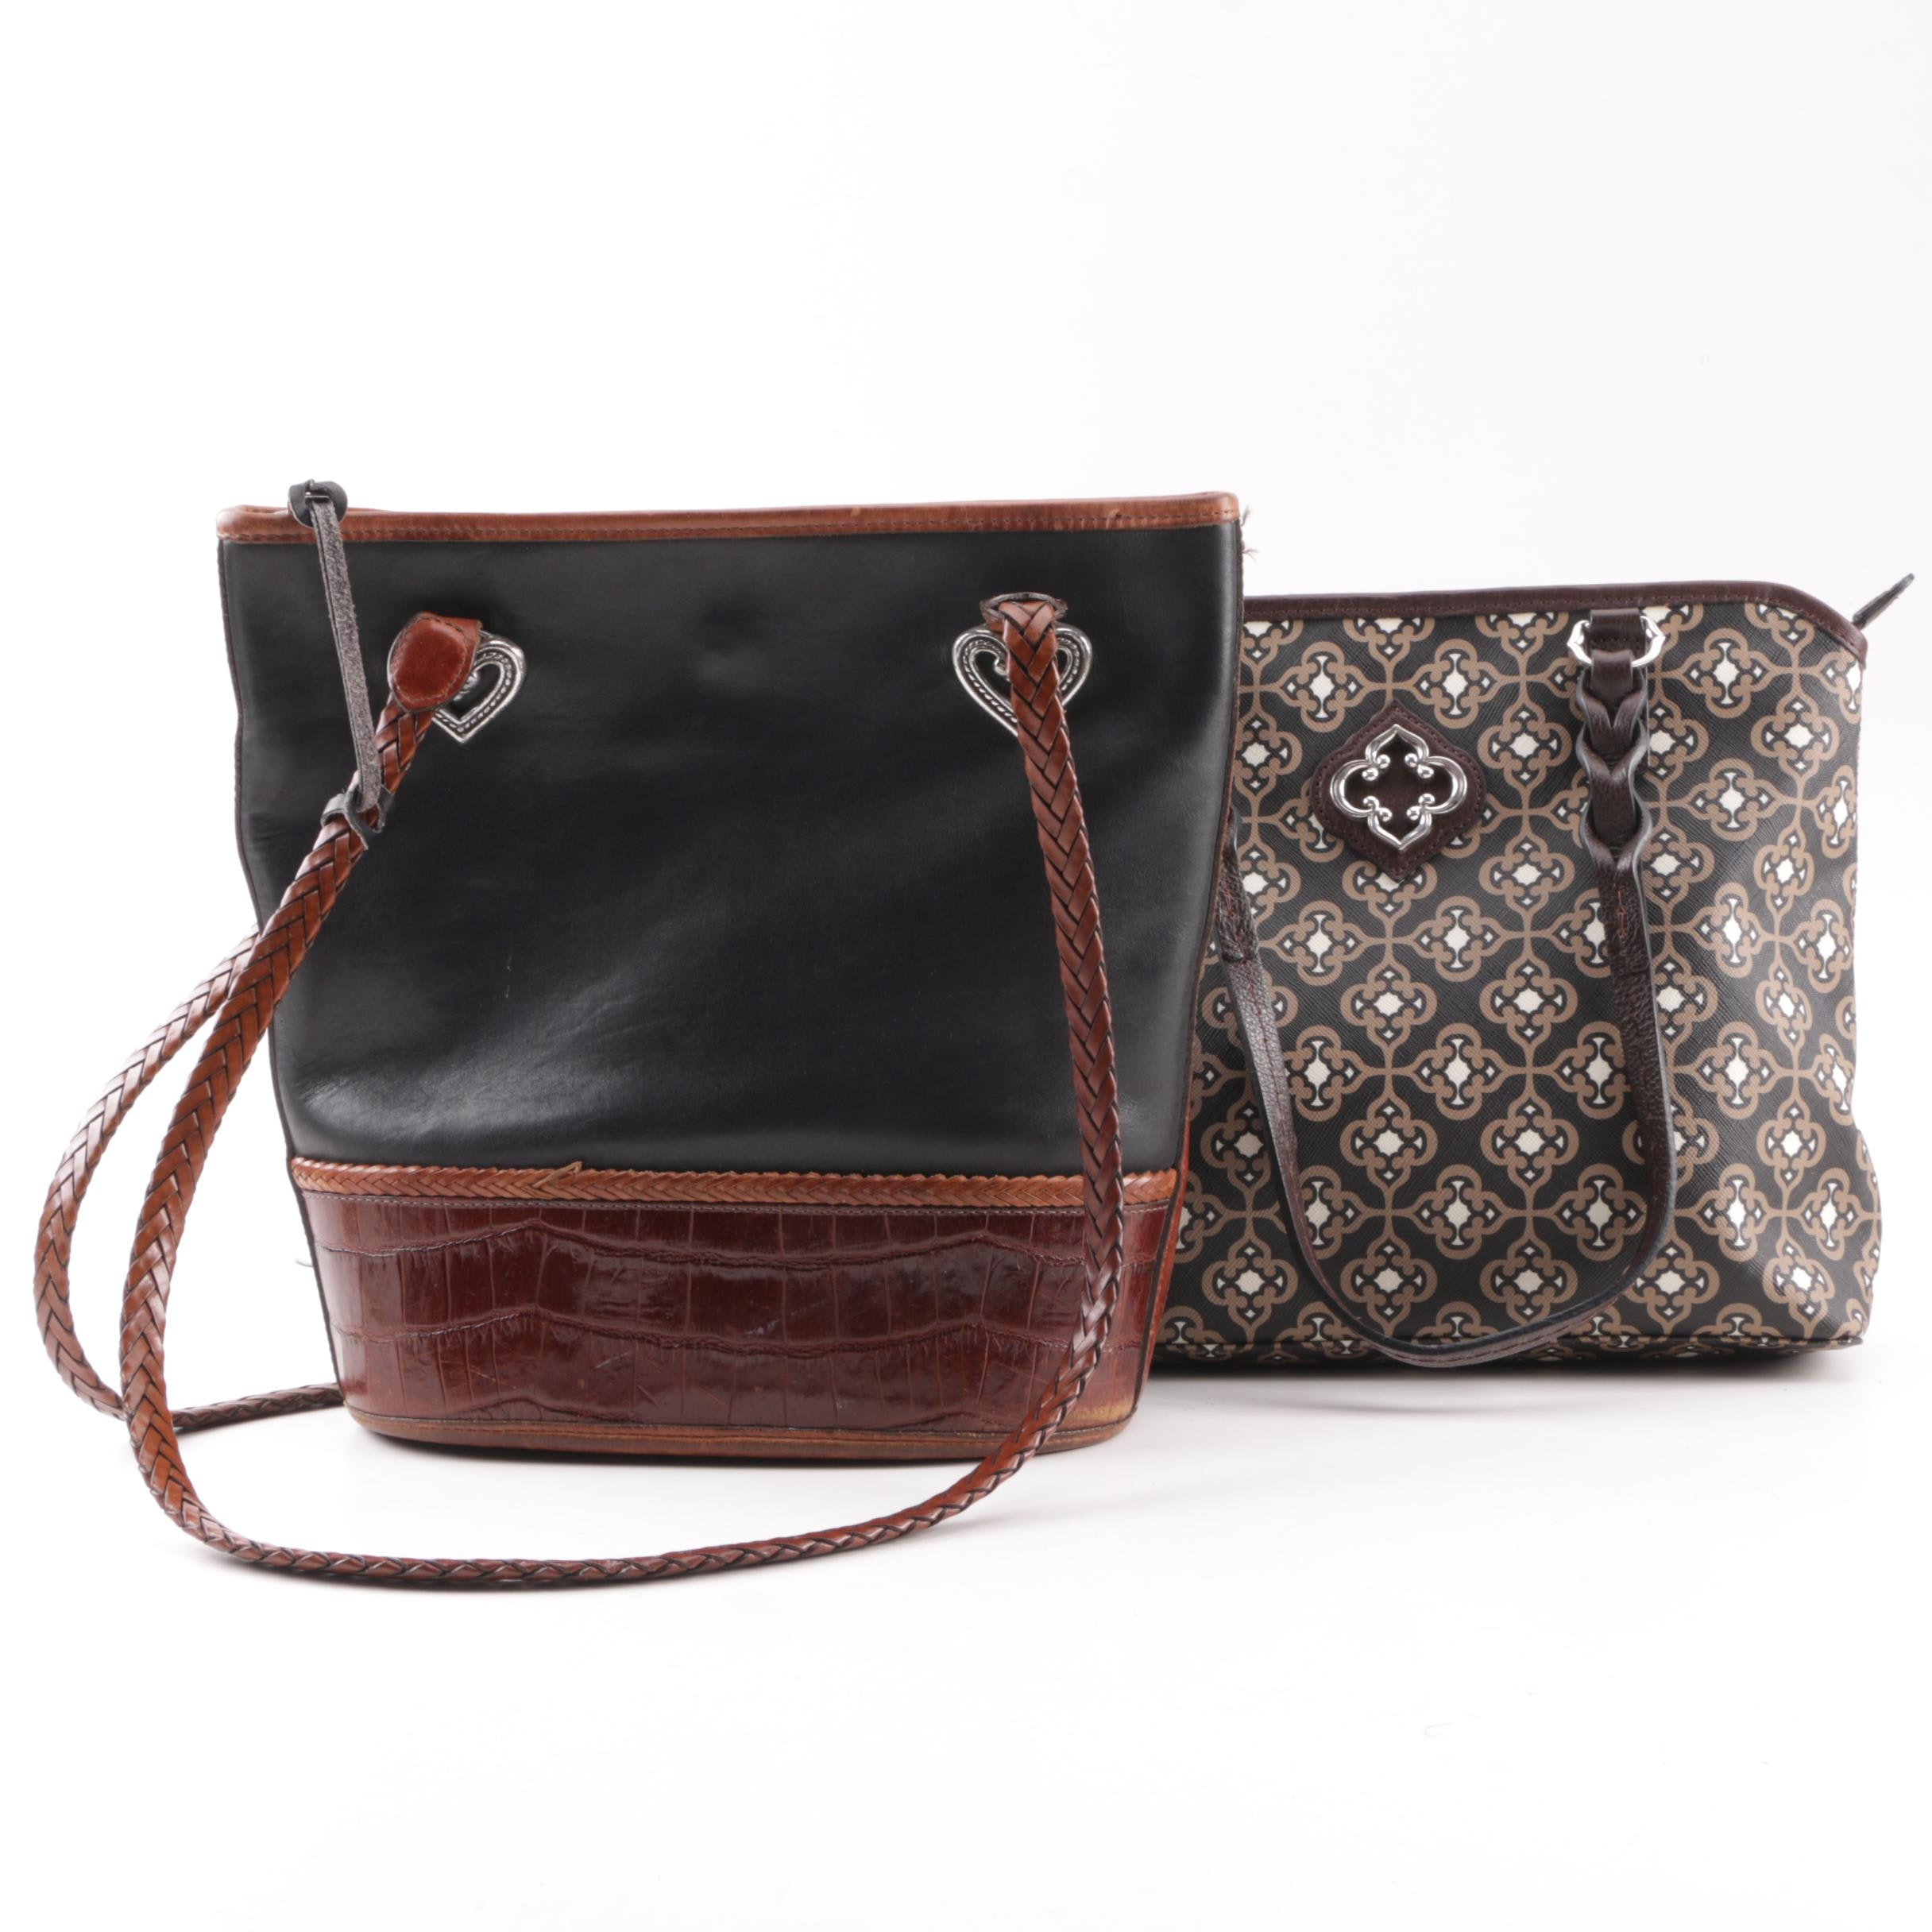 Brighton Black and Embossed Brown Leather and Patterned Coated Canvas Handbags